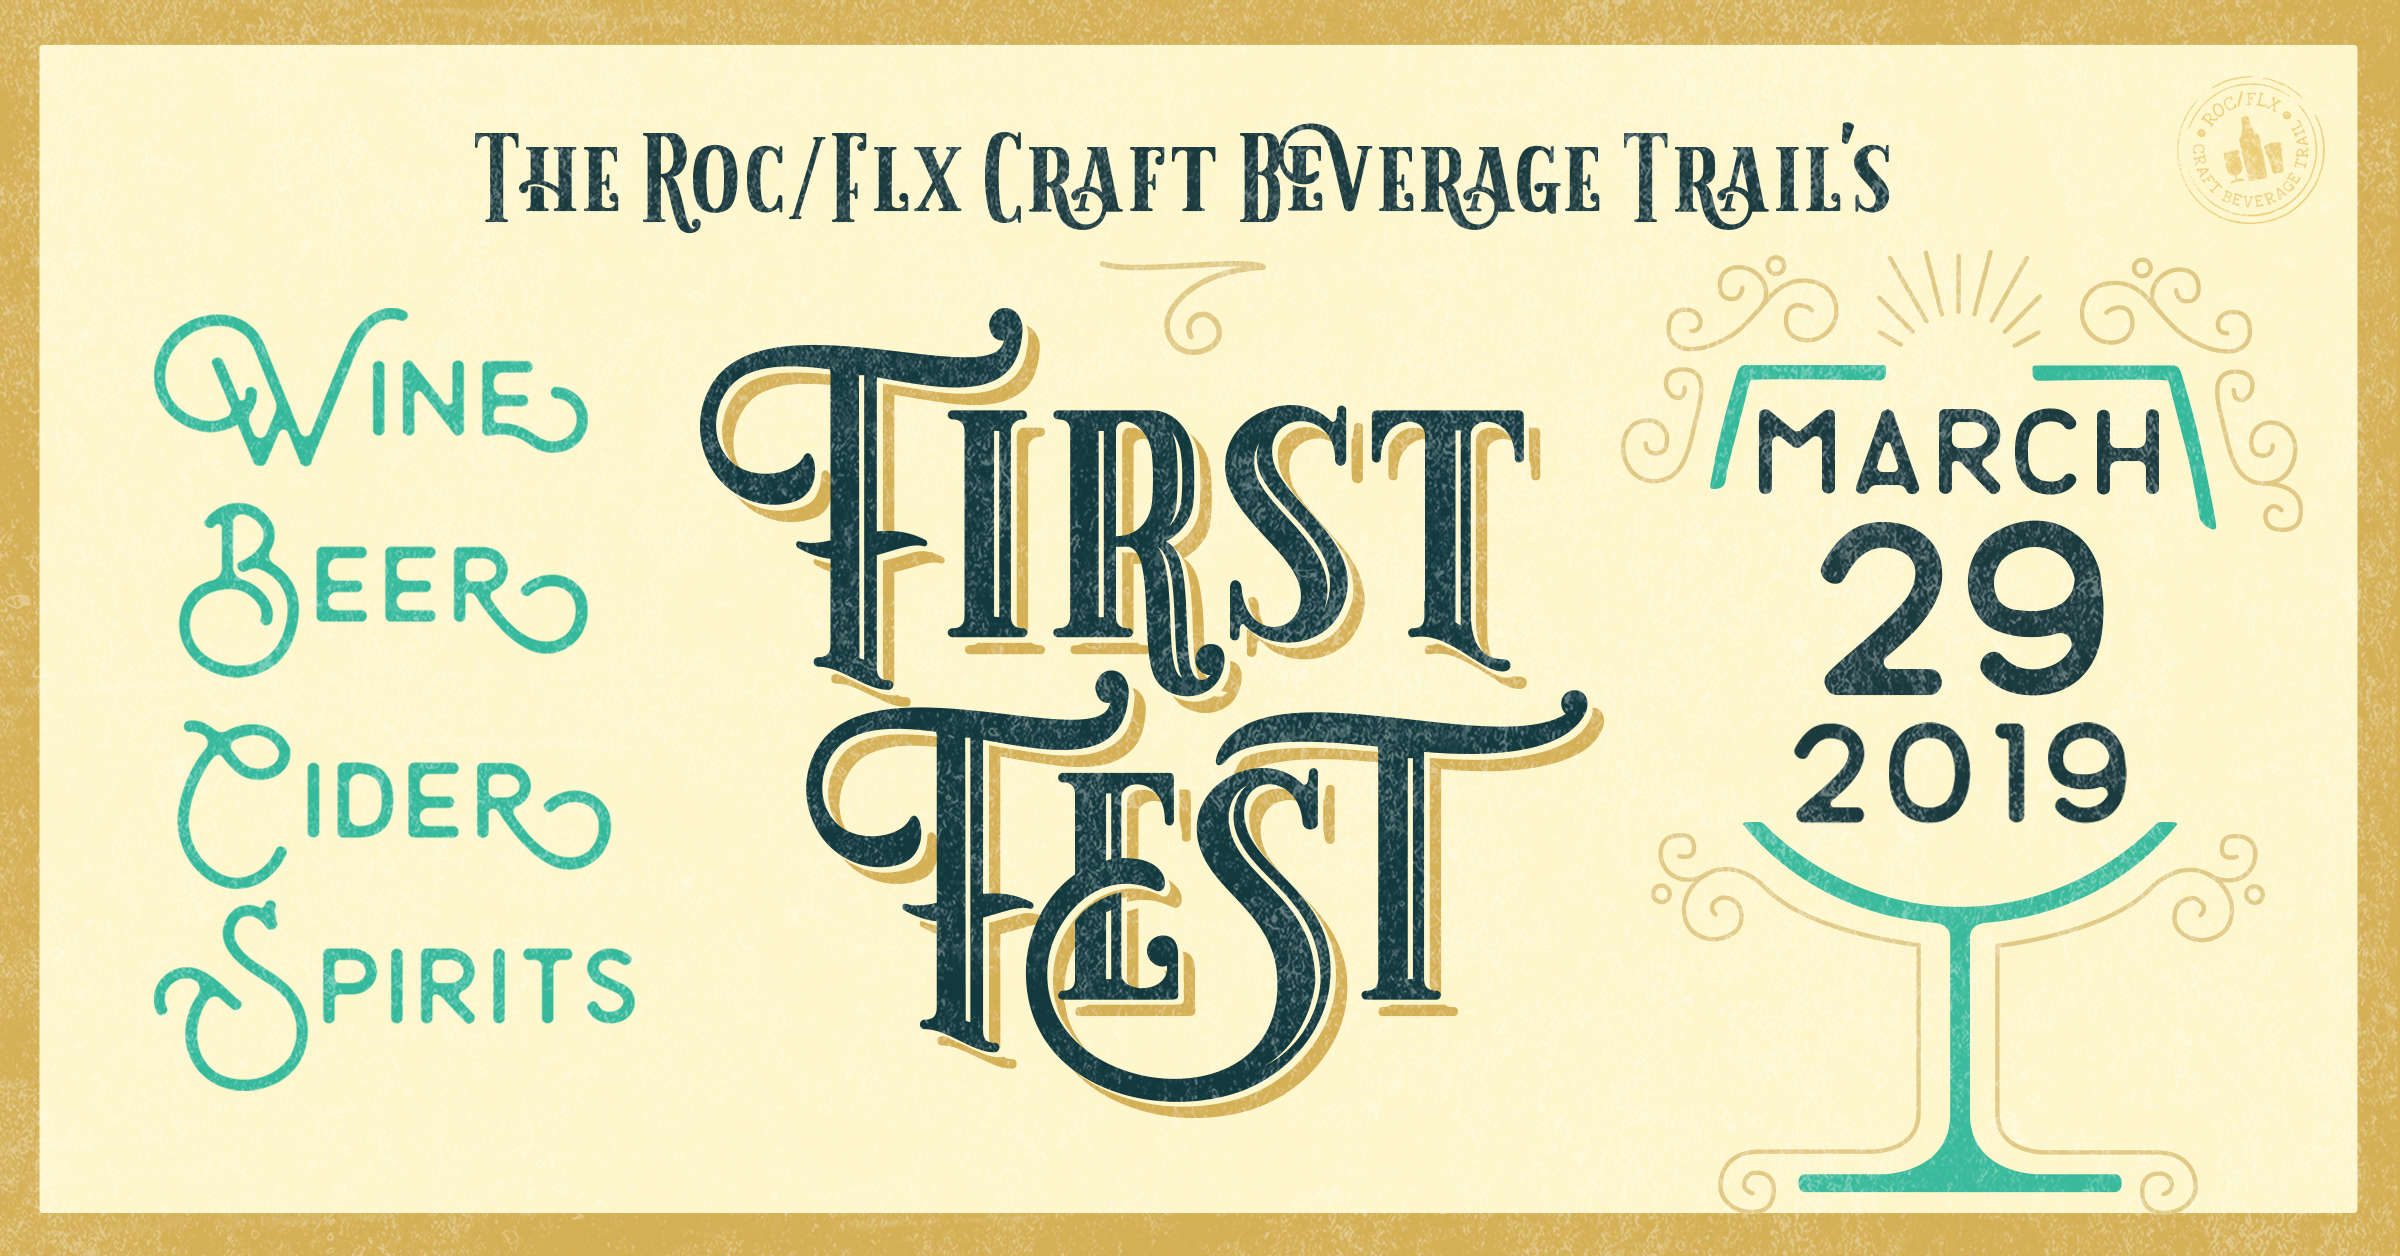 Rochester and Finger Lakes Craft Beverage Trail Advertisement for First Fest on March 29, 2019